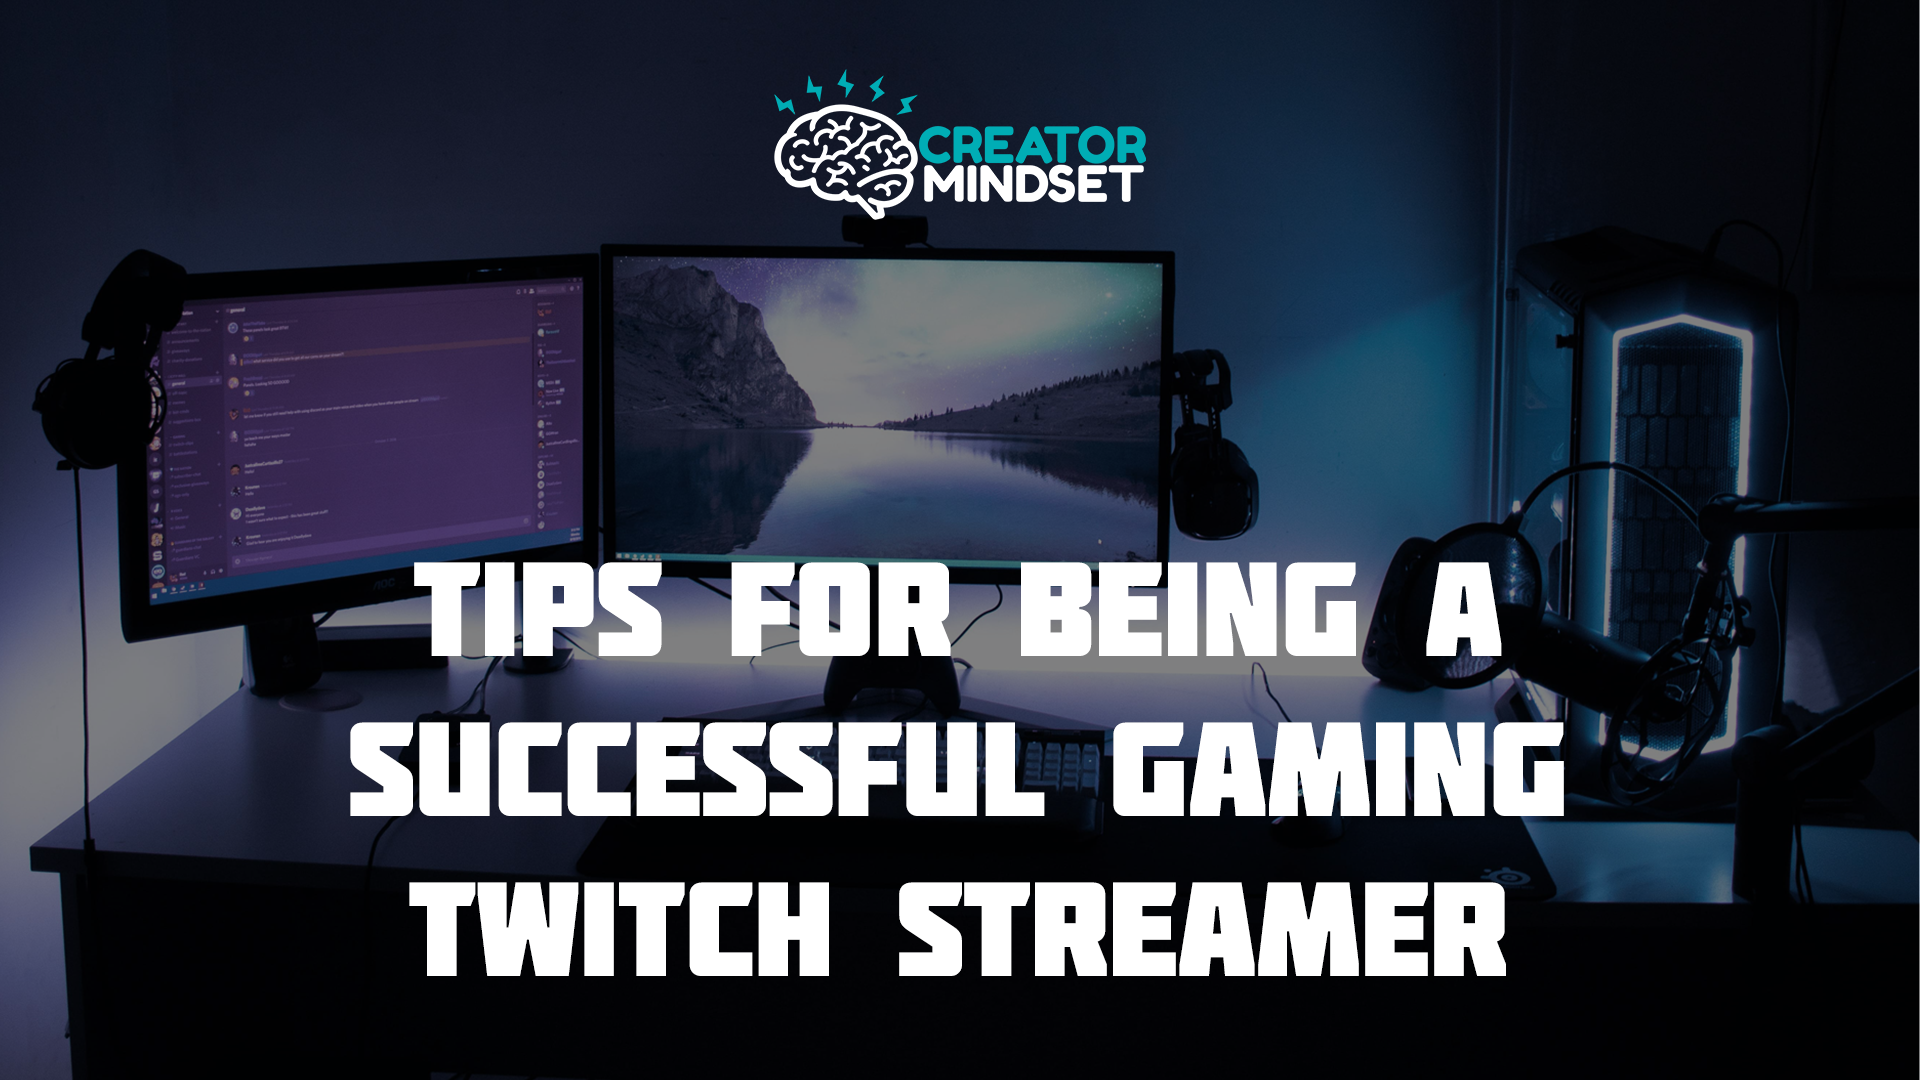 Twitch, a streaming platform that Amazon owns, has now become more popular than ever! Twitch boasts of getting around 40 million monthly viewers from all over the world, specifically by individuals who love watching other people stream how they play games, conduct talk shows, and play music.